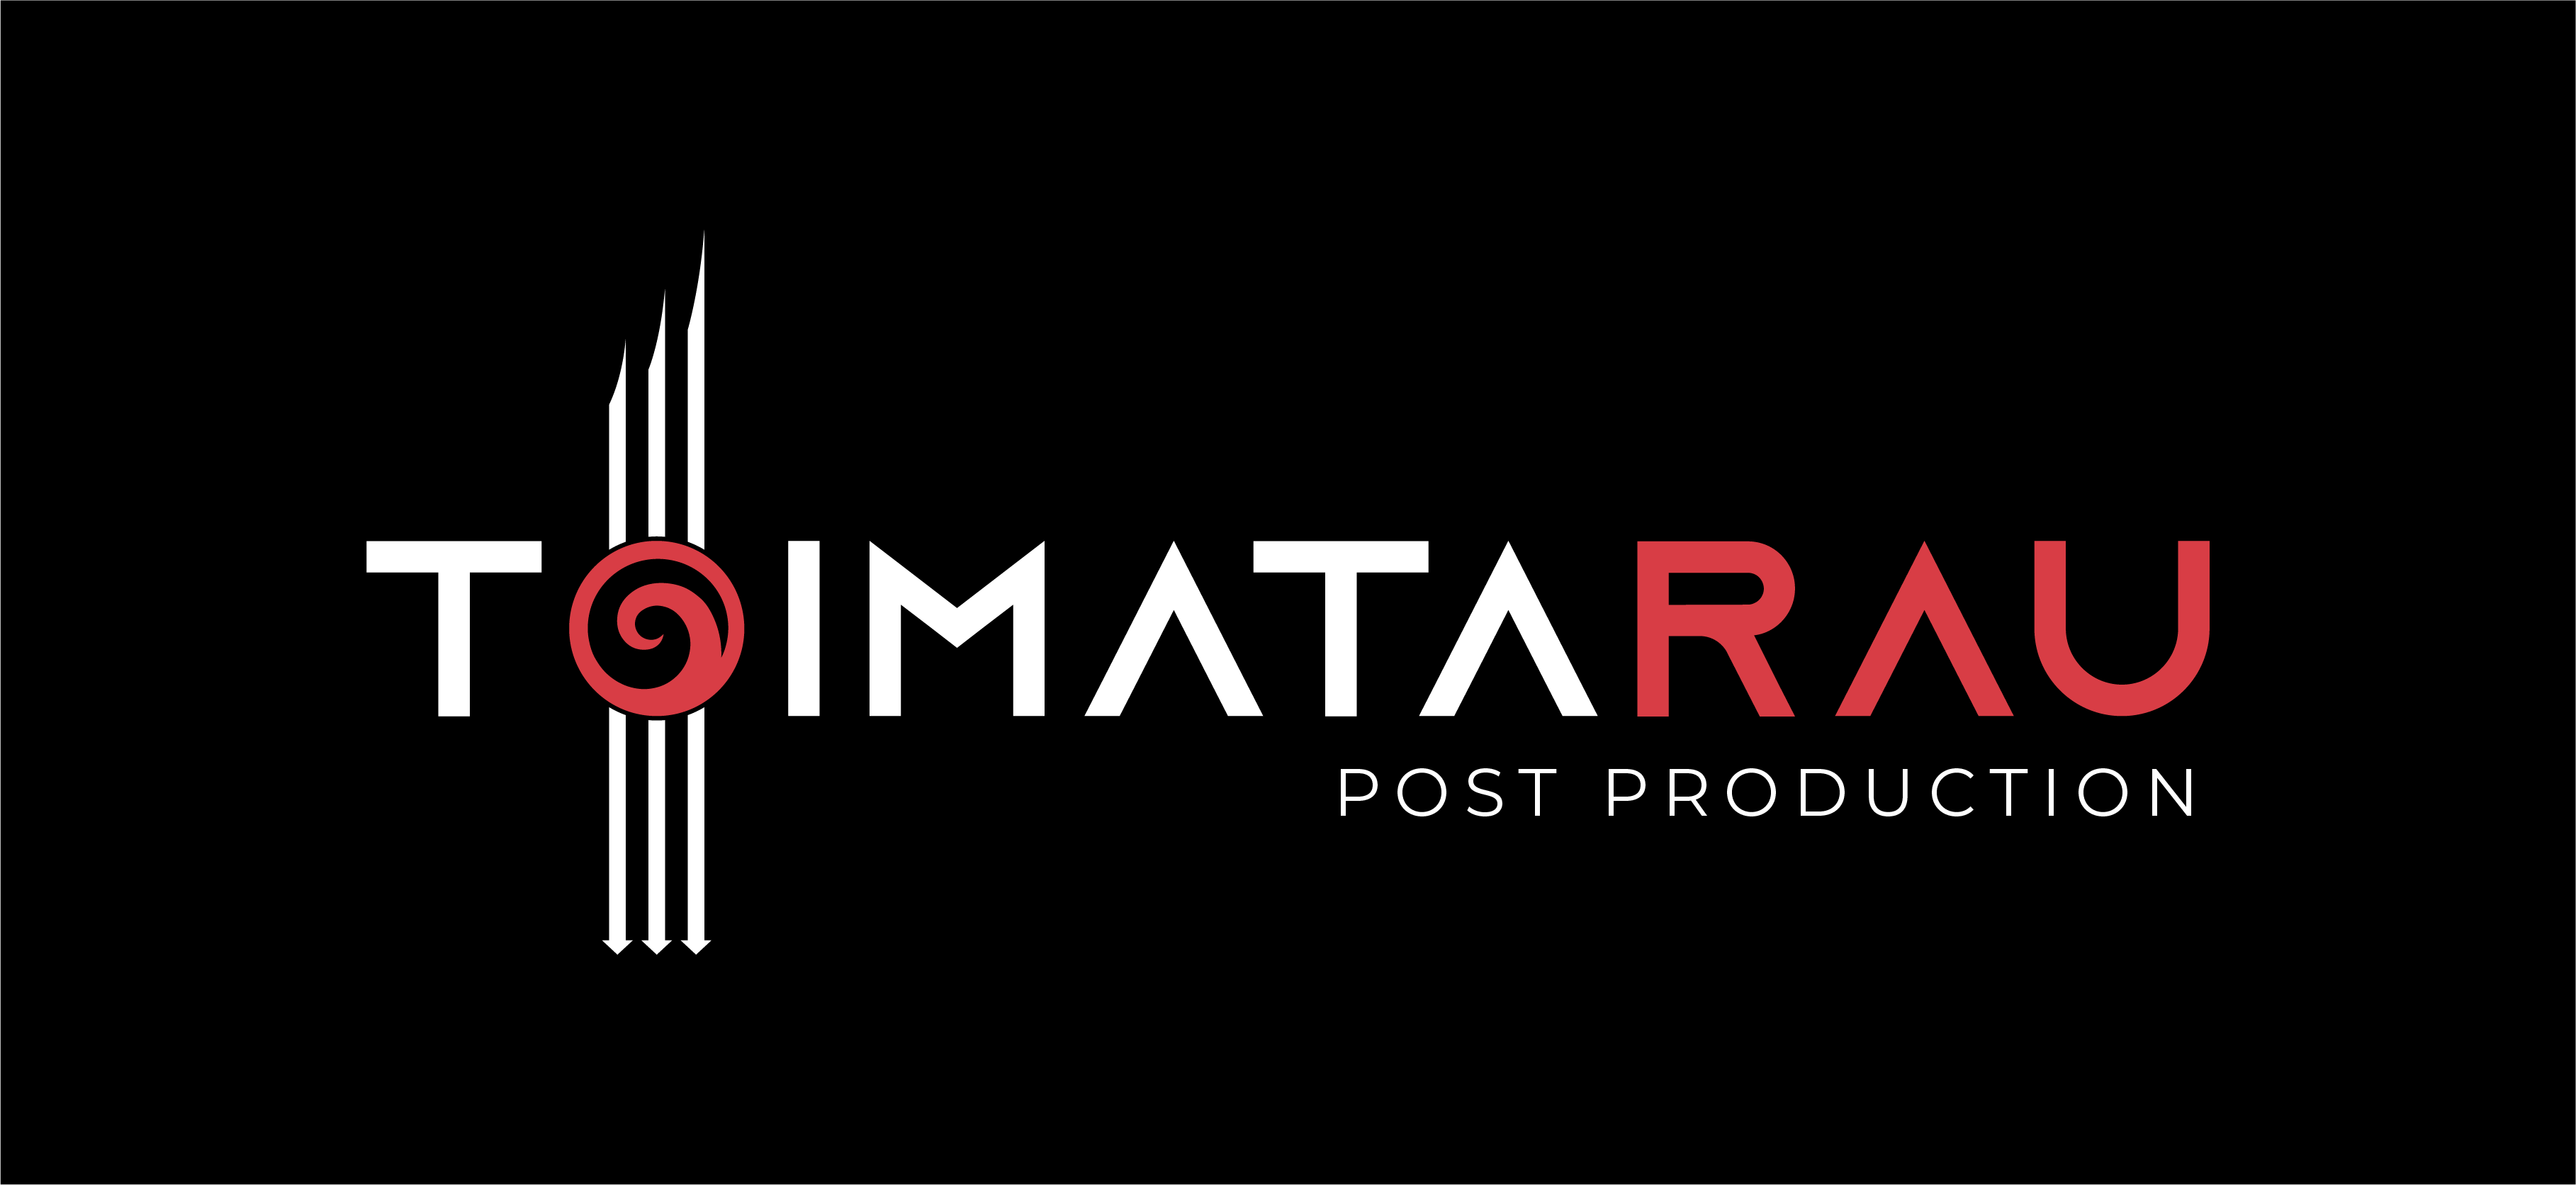 Toimatarau Post Production